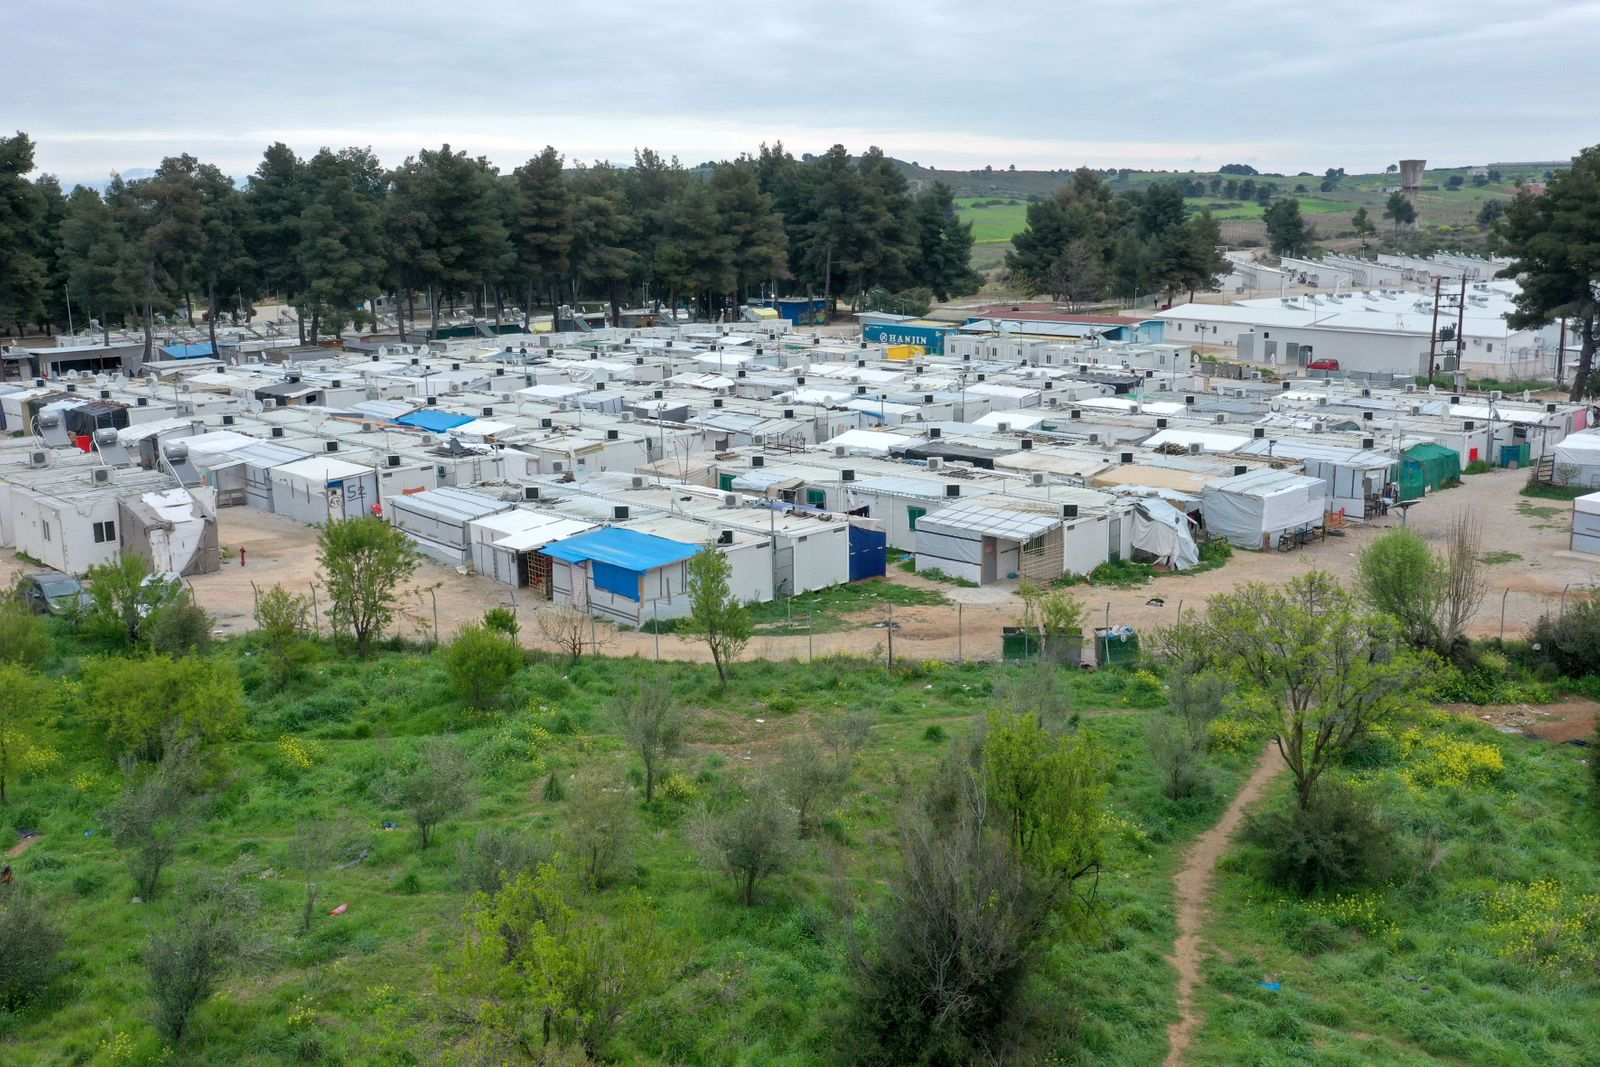 Refugee camp of Ritsona confirmed 23 cases of covid-19, Greece - 03 Apr 2020